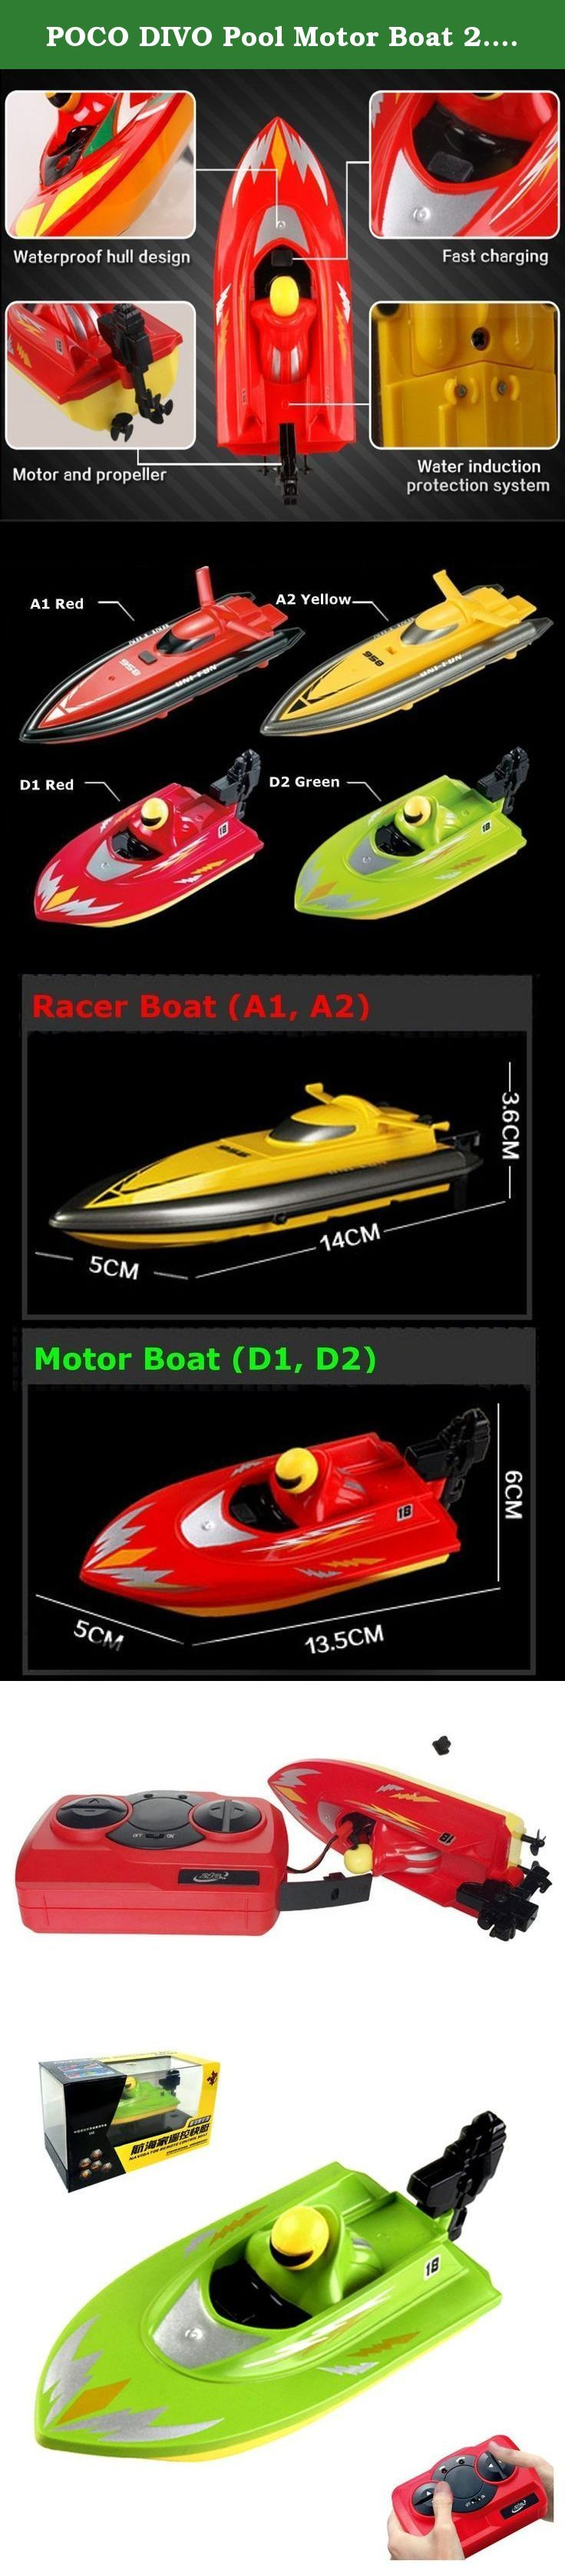 "POCO DIVO Pool Motor Boat 2.4Ghz Mini RC Racer Bathtub Yacht Toy Ship - Green. Pool Motor Boat 2.4Ghz Mini RC Racer Bathtub Yacht Toy Ship - ""Touch water to run"" safety function, the propellers will run when the boat touches the water - Full function remote control (Forward, Backward, Right/Left turn) - Perfect for Bathtub, Jacuzzi, Pool, and Home aquarium - 2.4Ghz technology allow more than 20 boats to sail at the same time - High quality, high performance, high water proof up to 1.5 feet…"